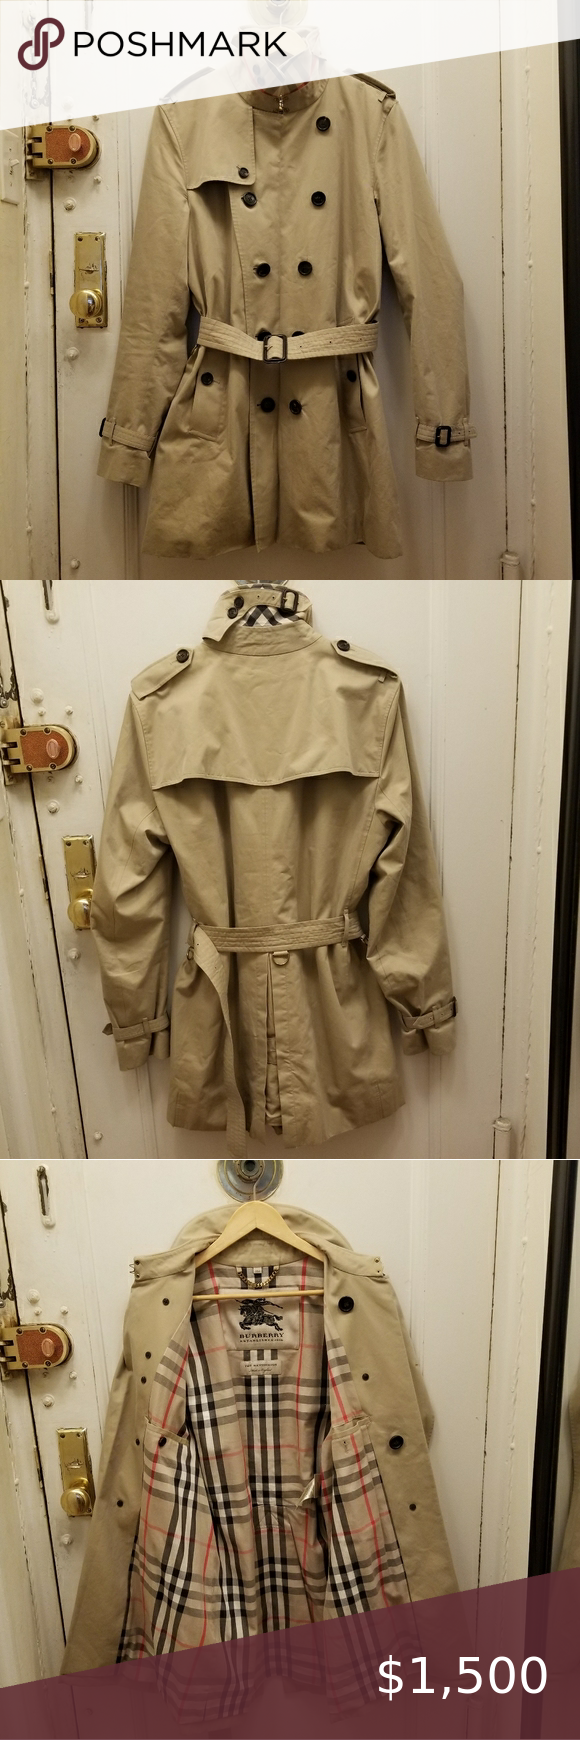 Iconic Burberry Kensington 100 Cotton Trench Coat In 2020 Clothes Design Heavy Sweaters Fashion